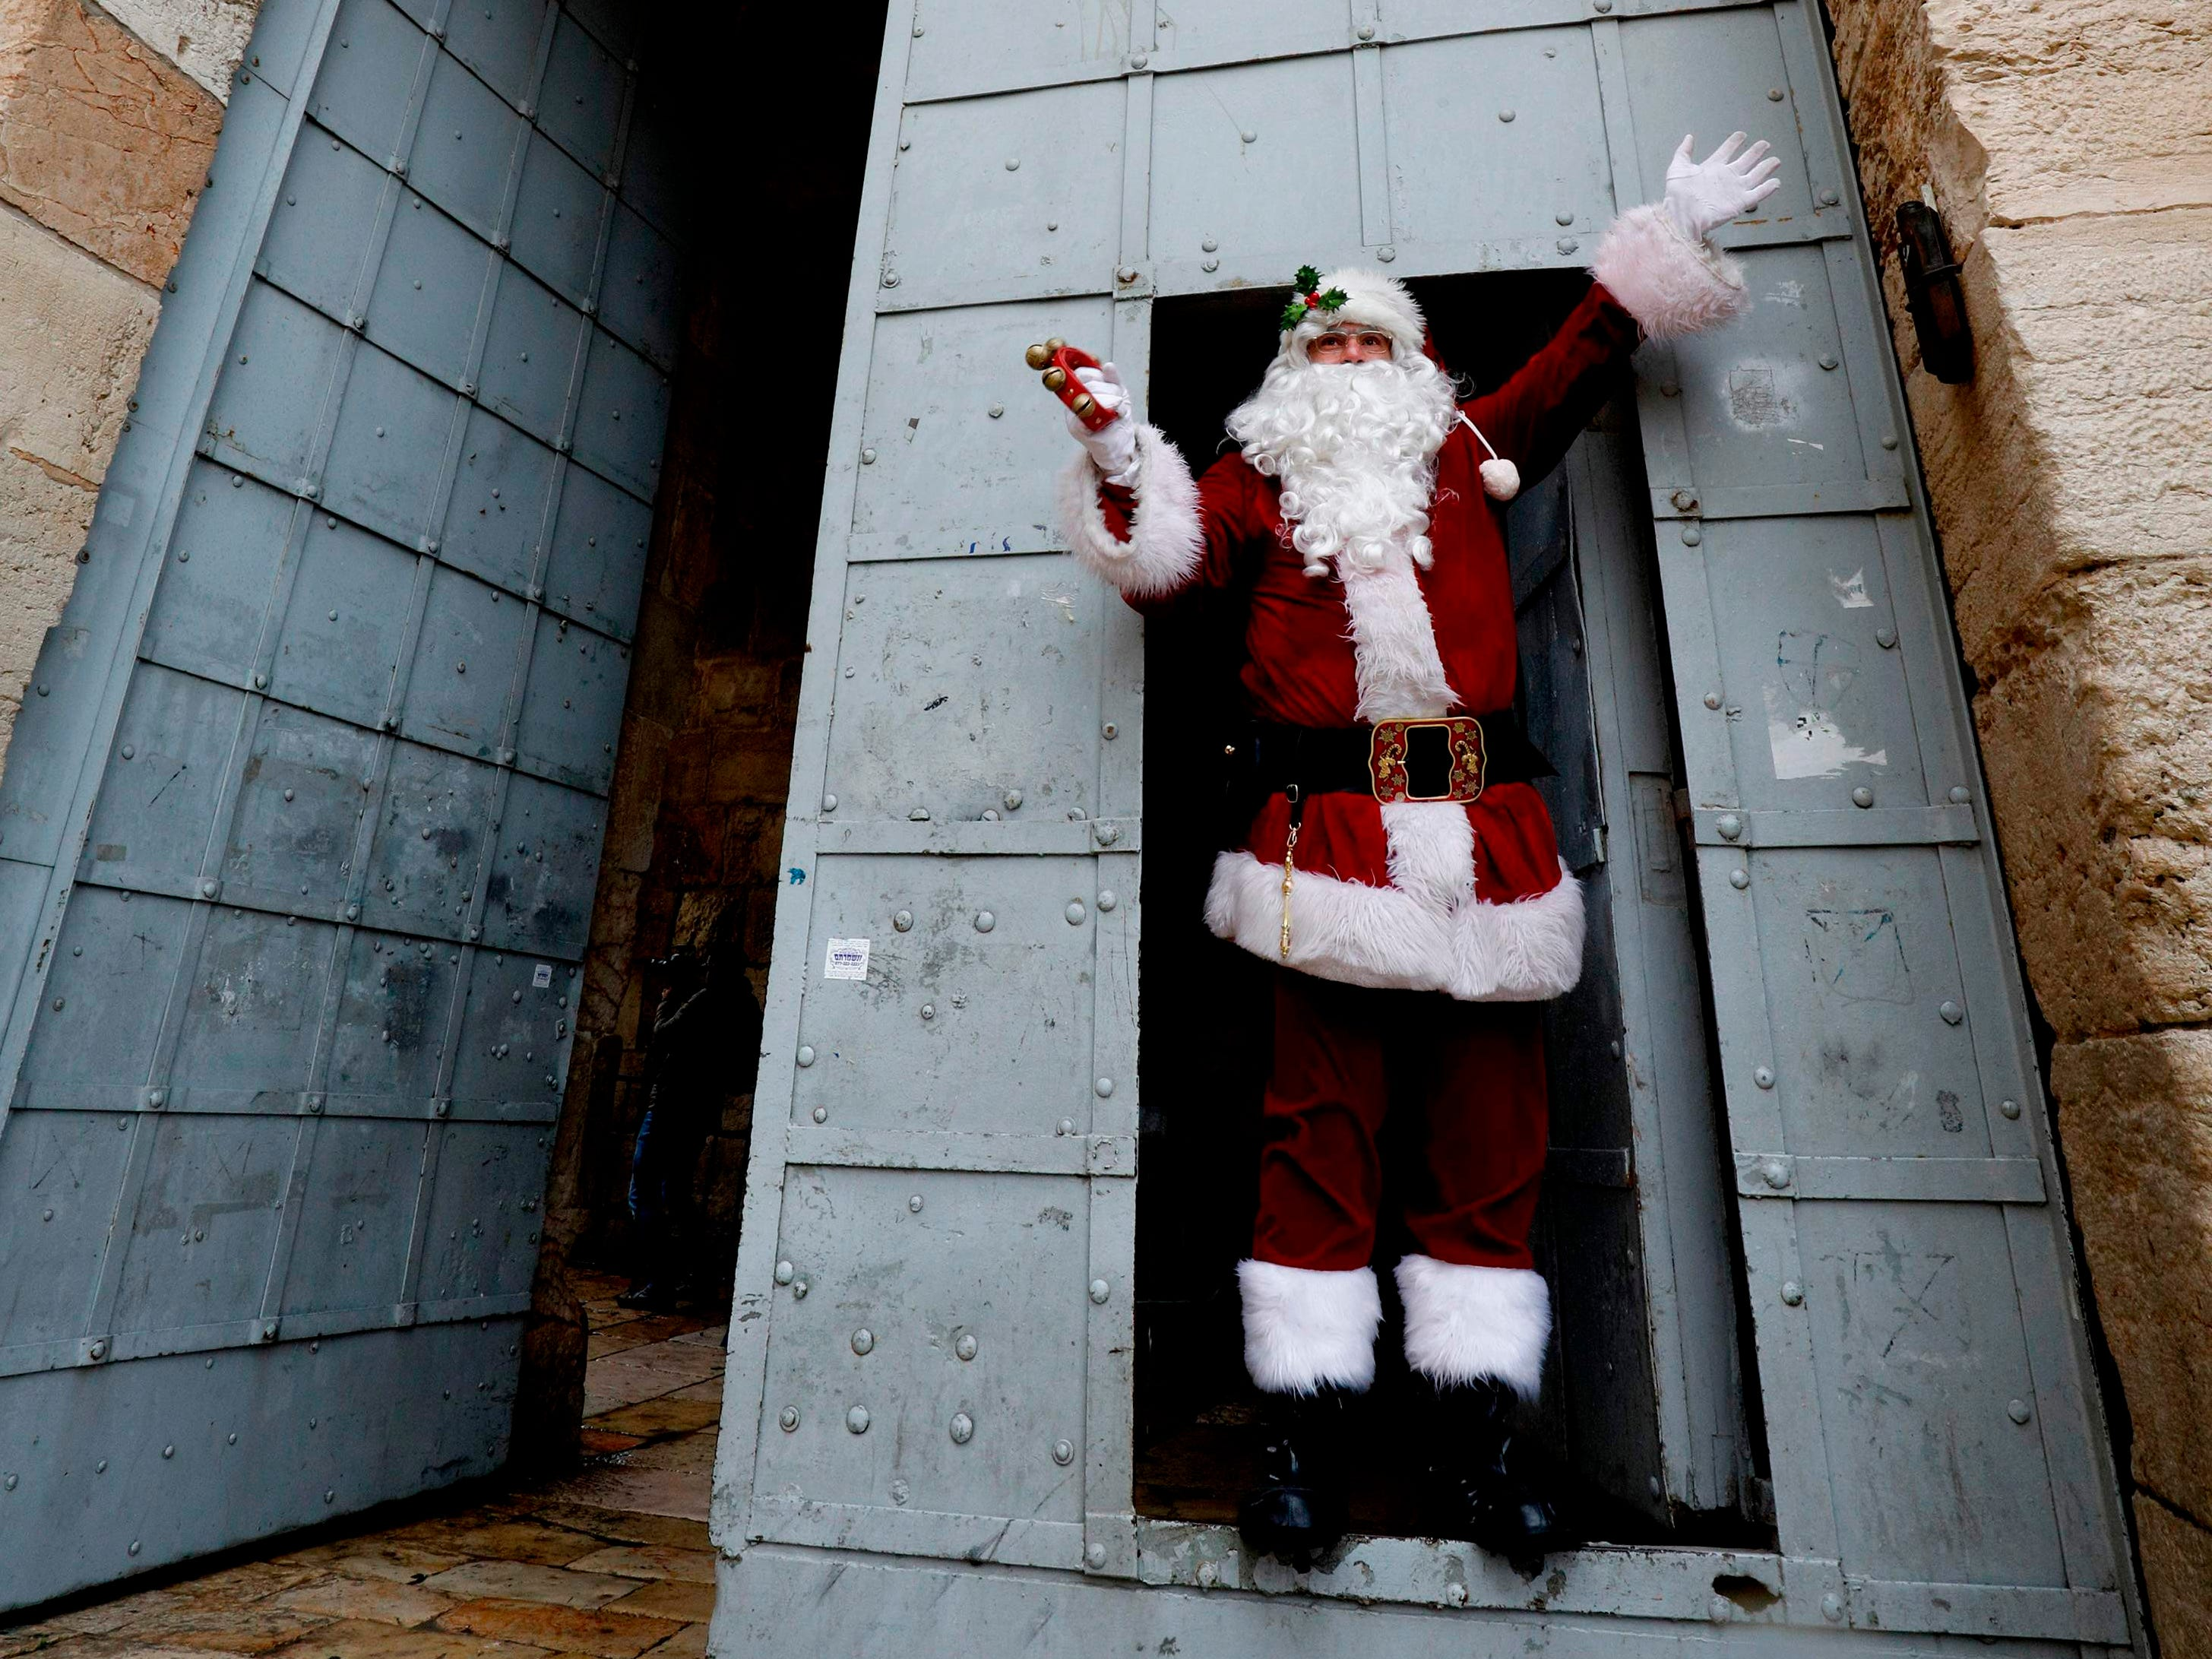 A man dressed as Santa Claus stands at the door of Jaffa Gate in Jerusalem's Old City on Dec. 20, 2018.